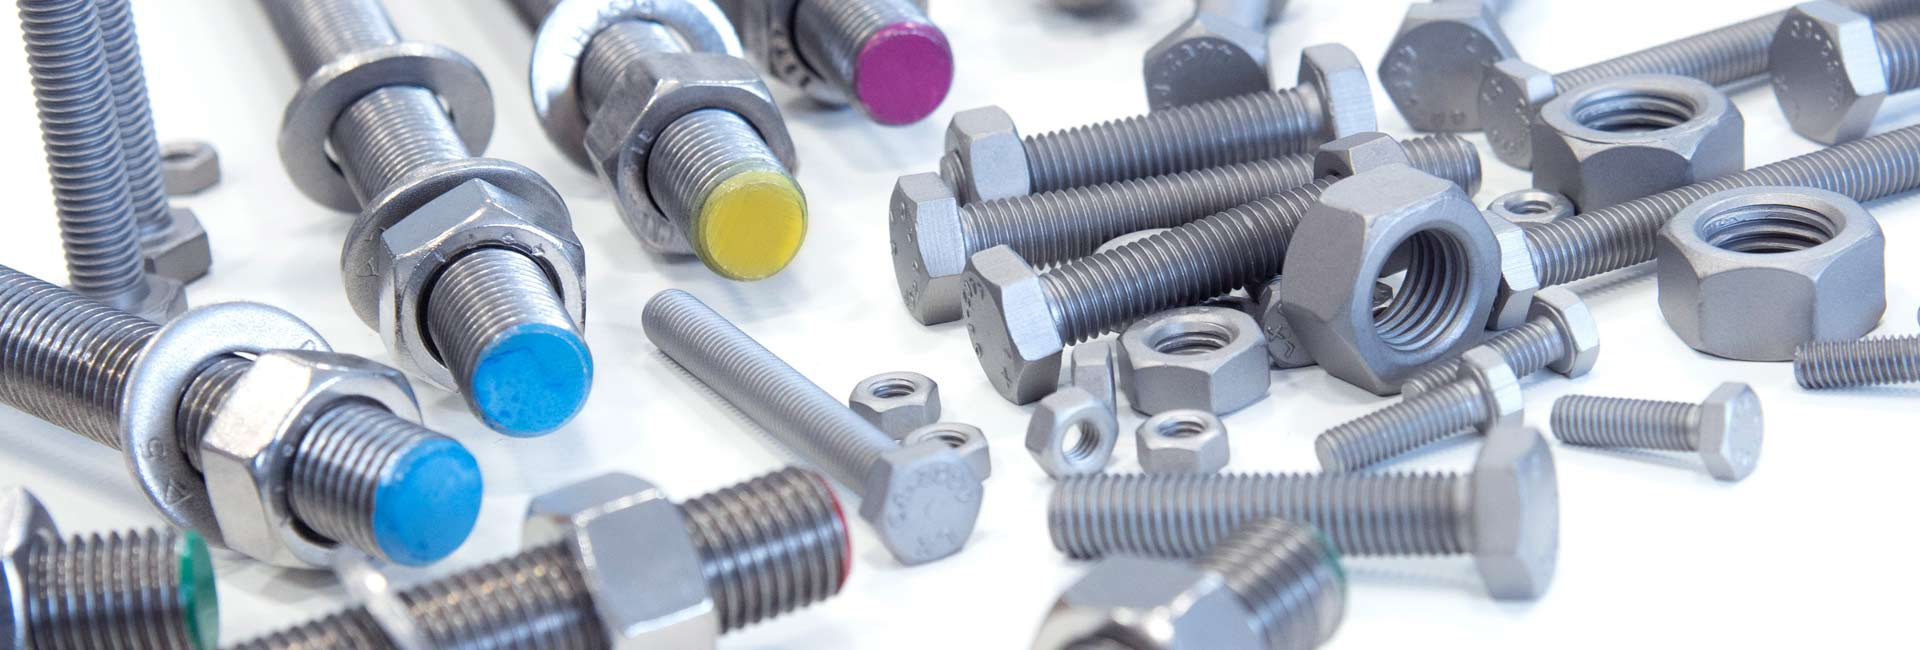 Special materials for fasteners of rust and acid resistant stainless steel